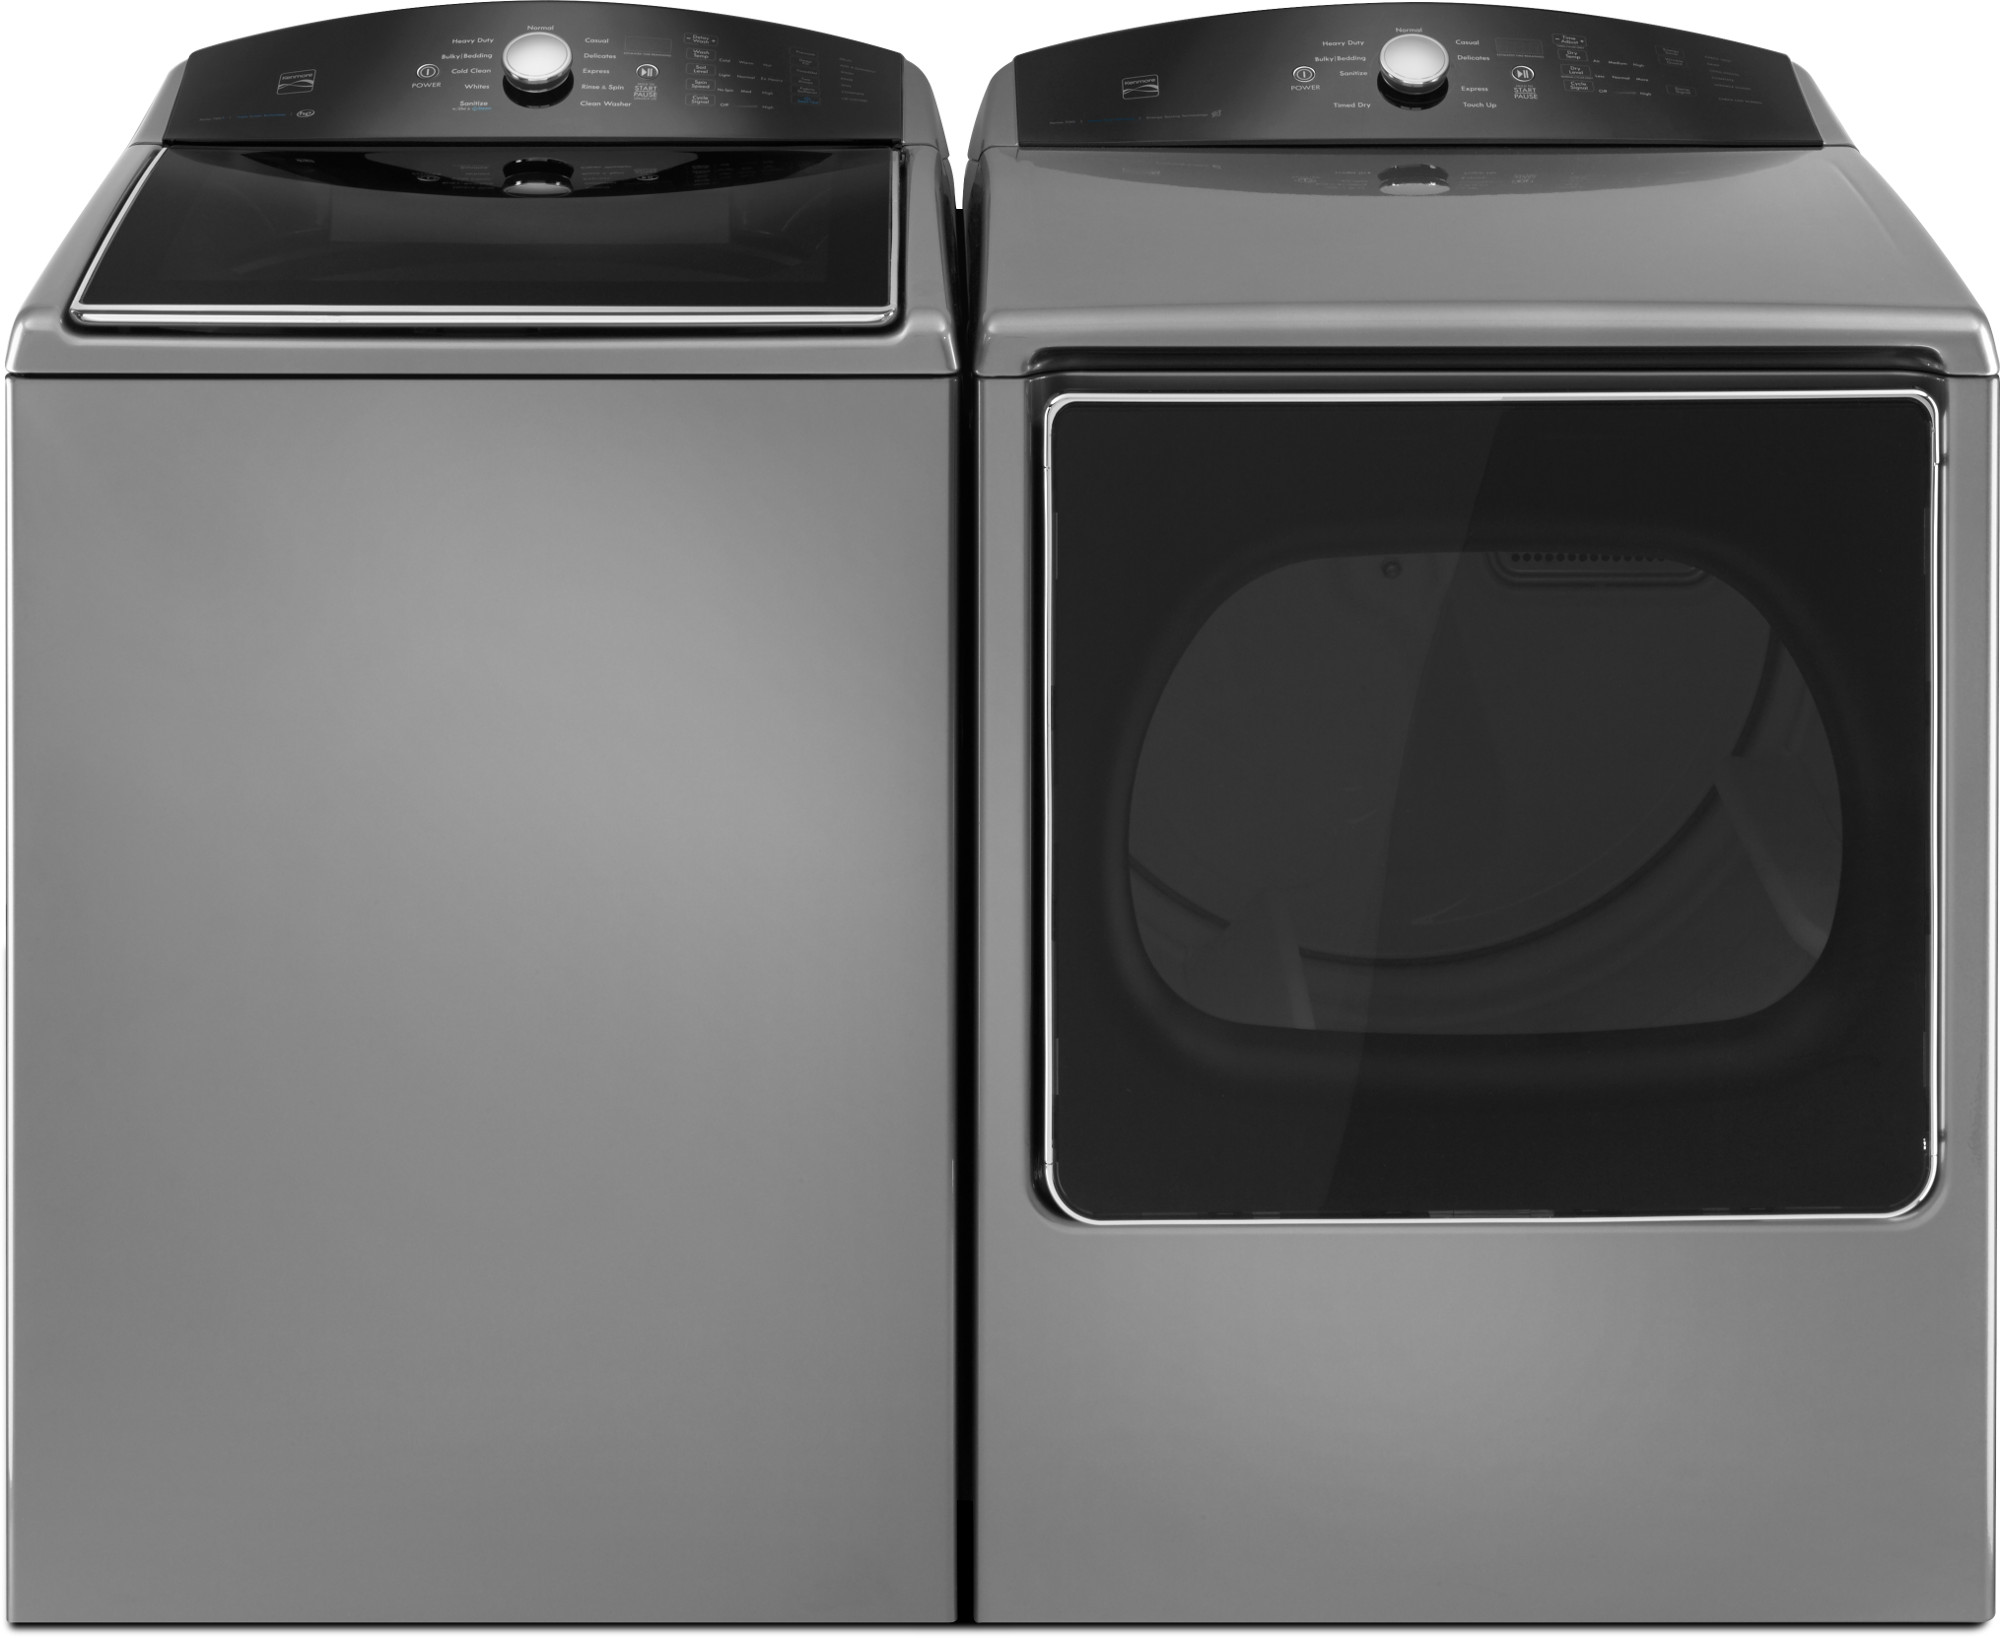 5.3 cu. ft. Top-Load Washer w/ a Triple Action Impeller & 8.8 cu. ft. Dryer - Metallic